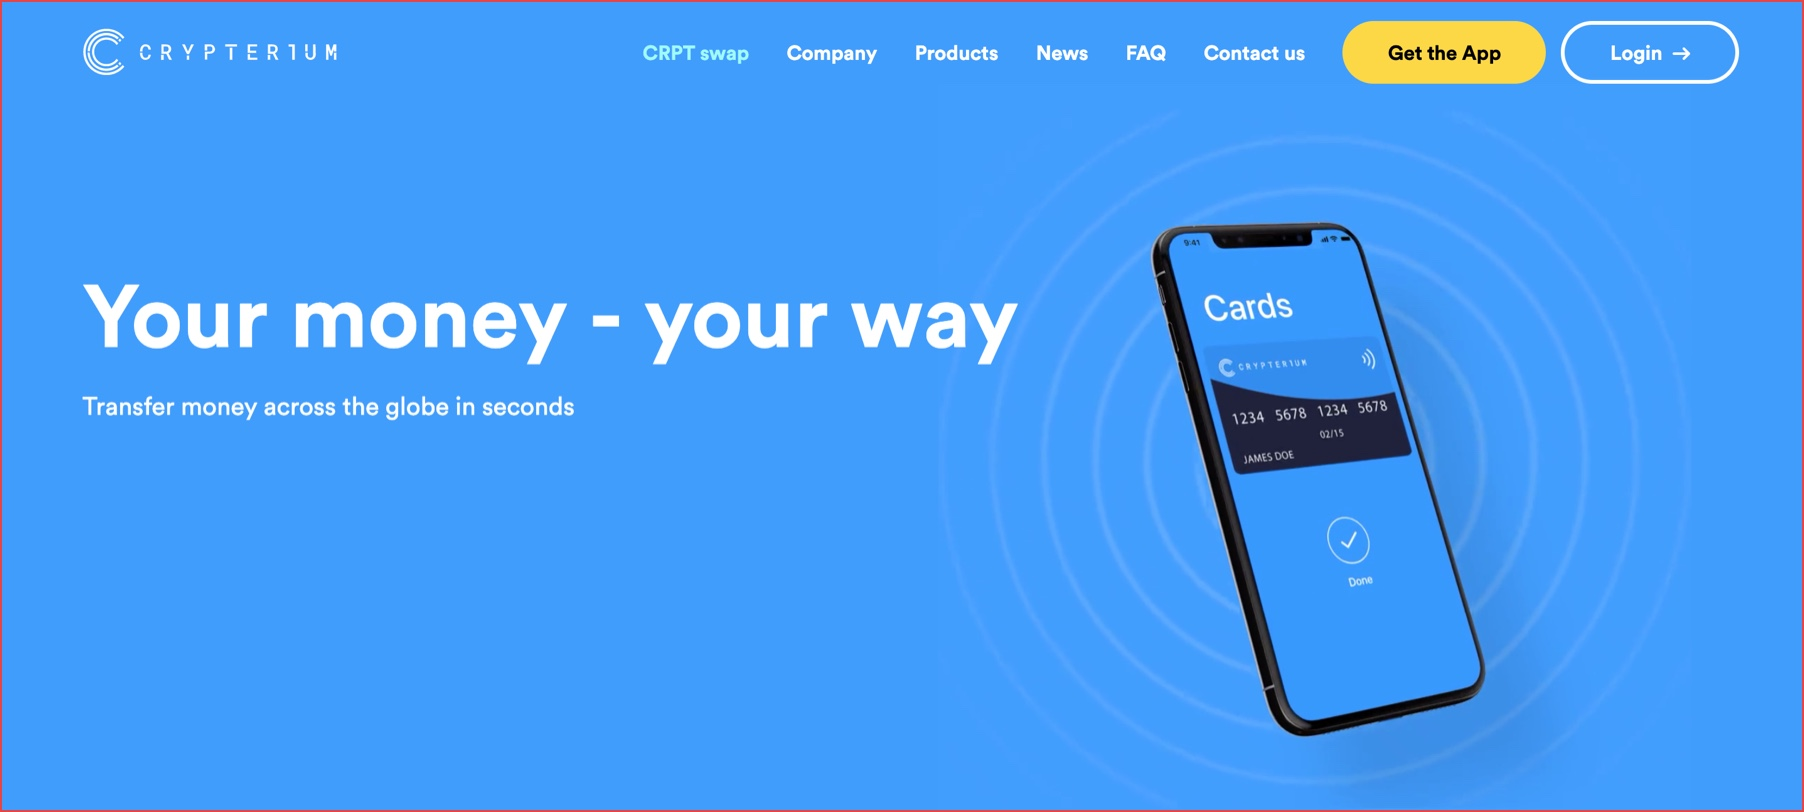 Crypterium Review: Global Card for Cryptocurrencies (My Experience)